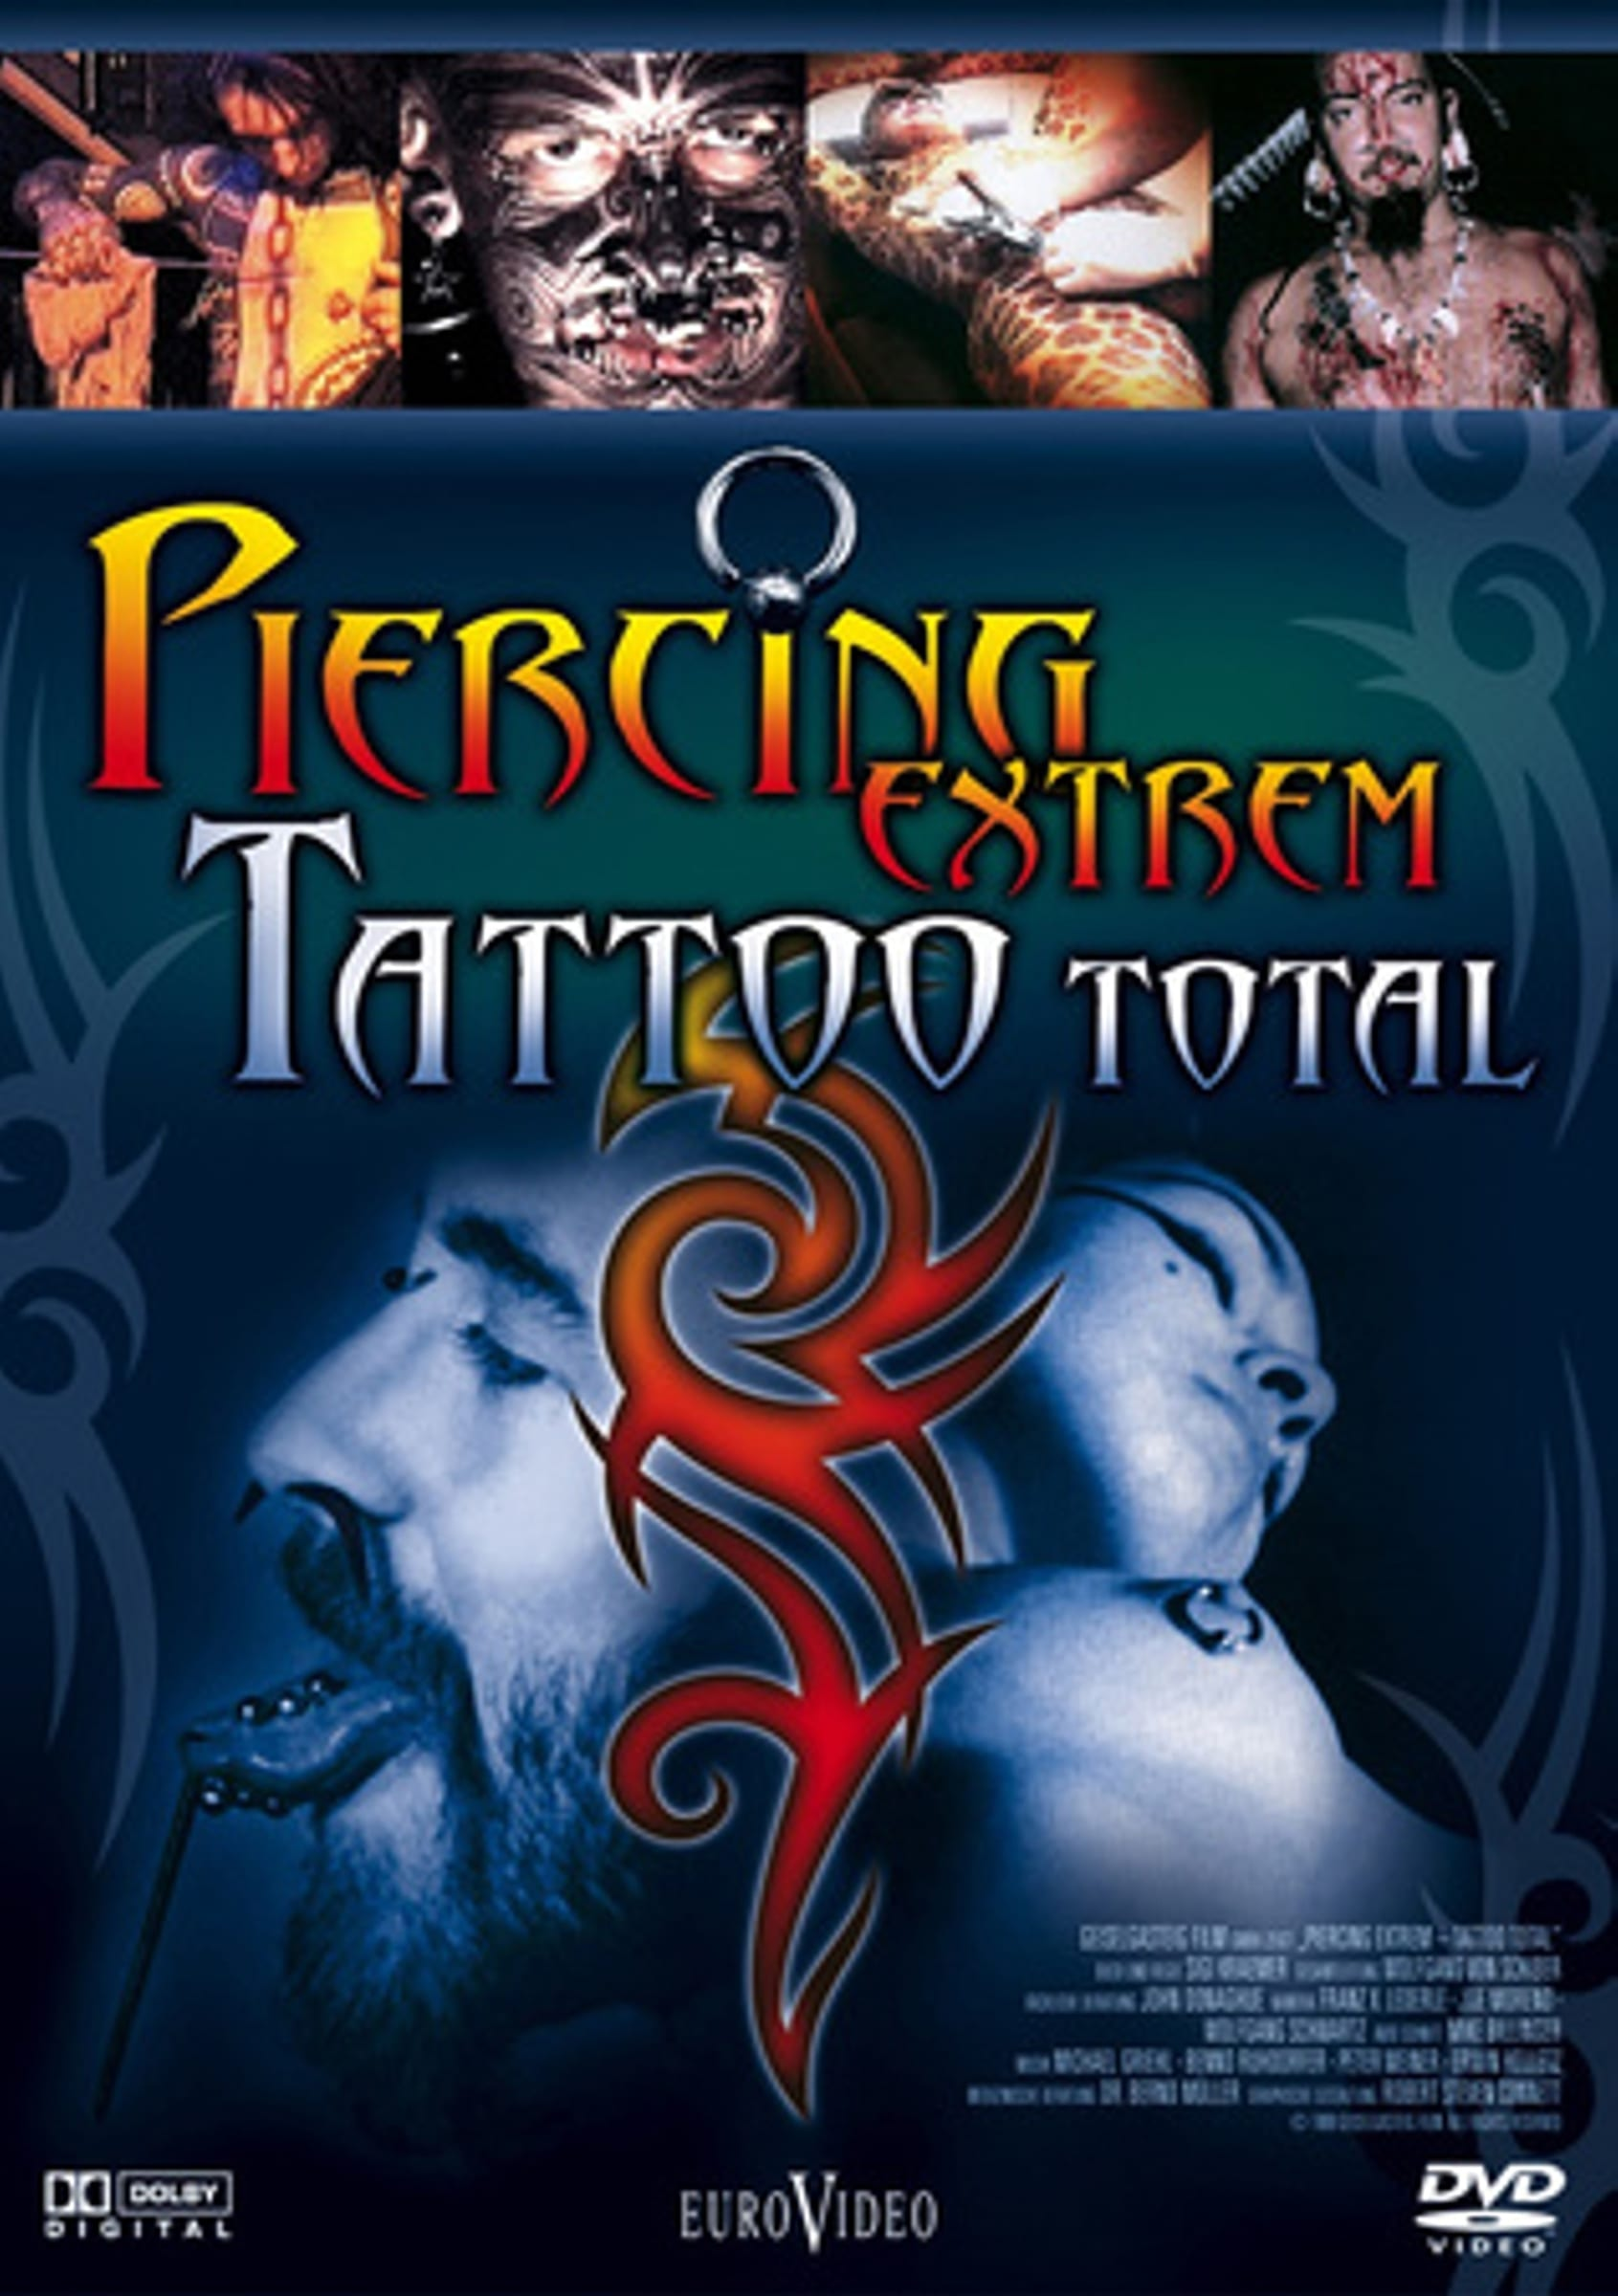 Piercing Extrem - Tattoo Total (1999)